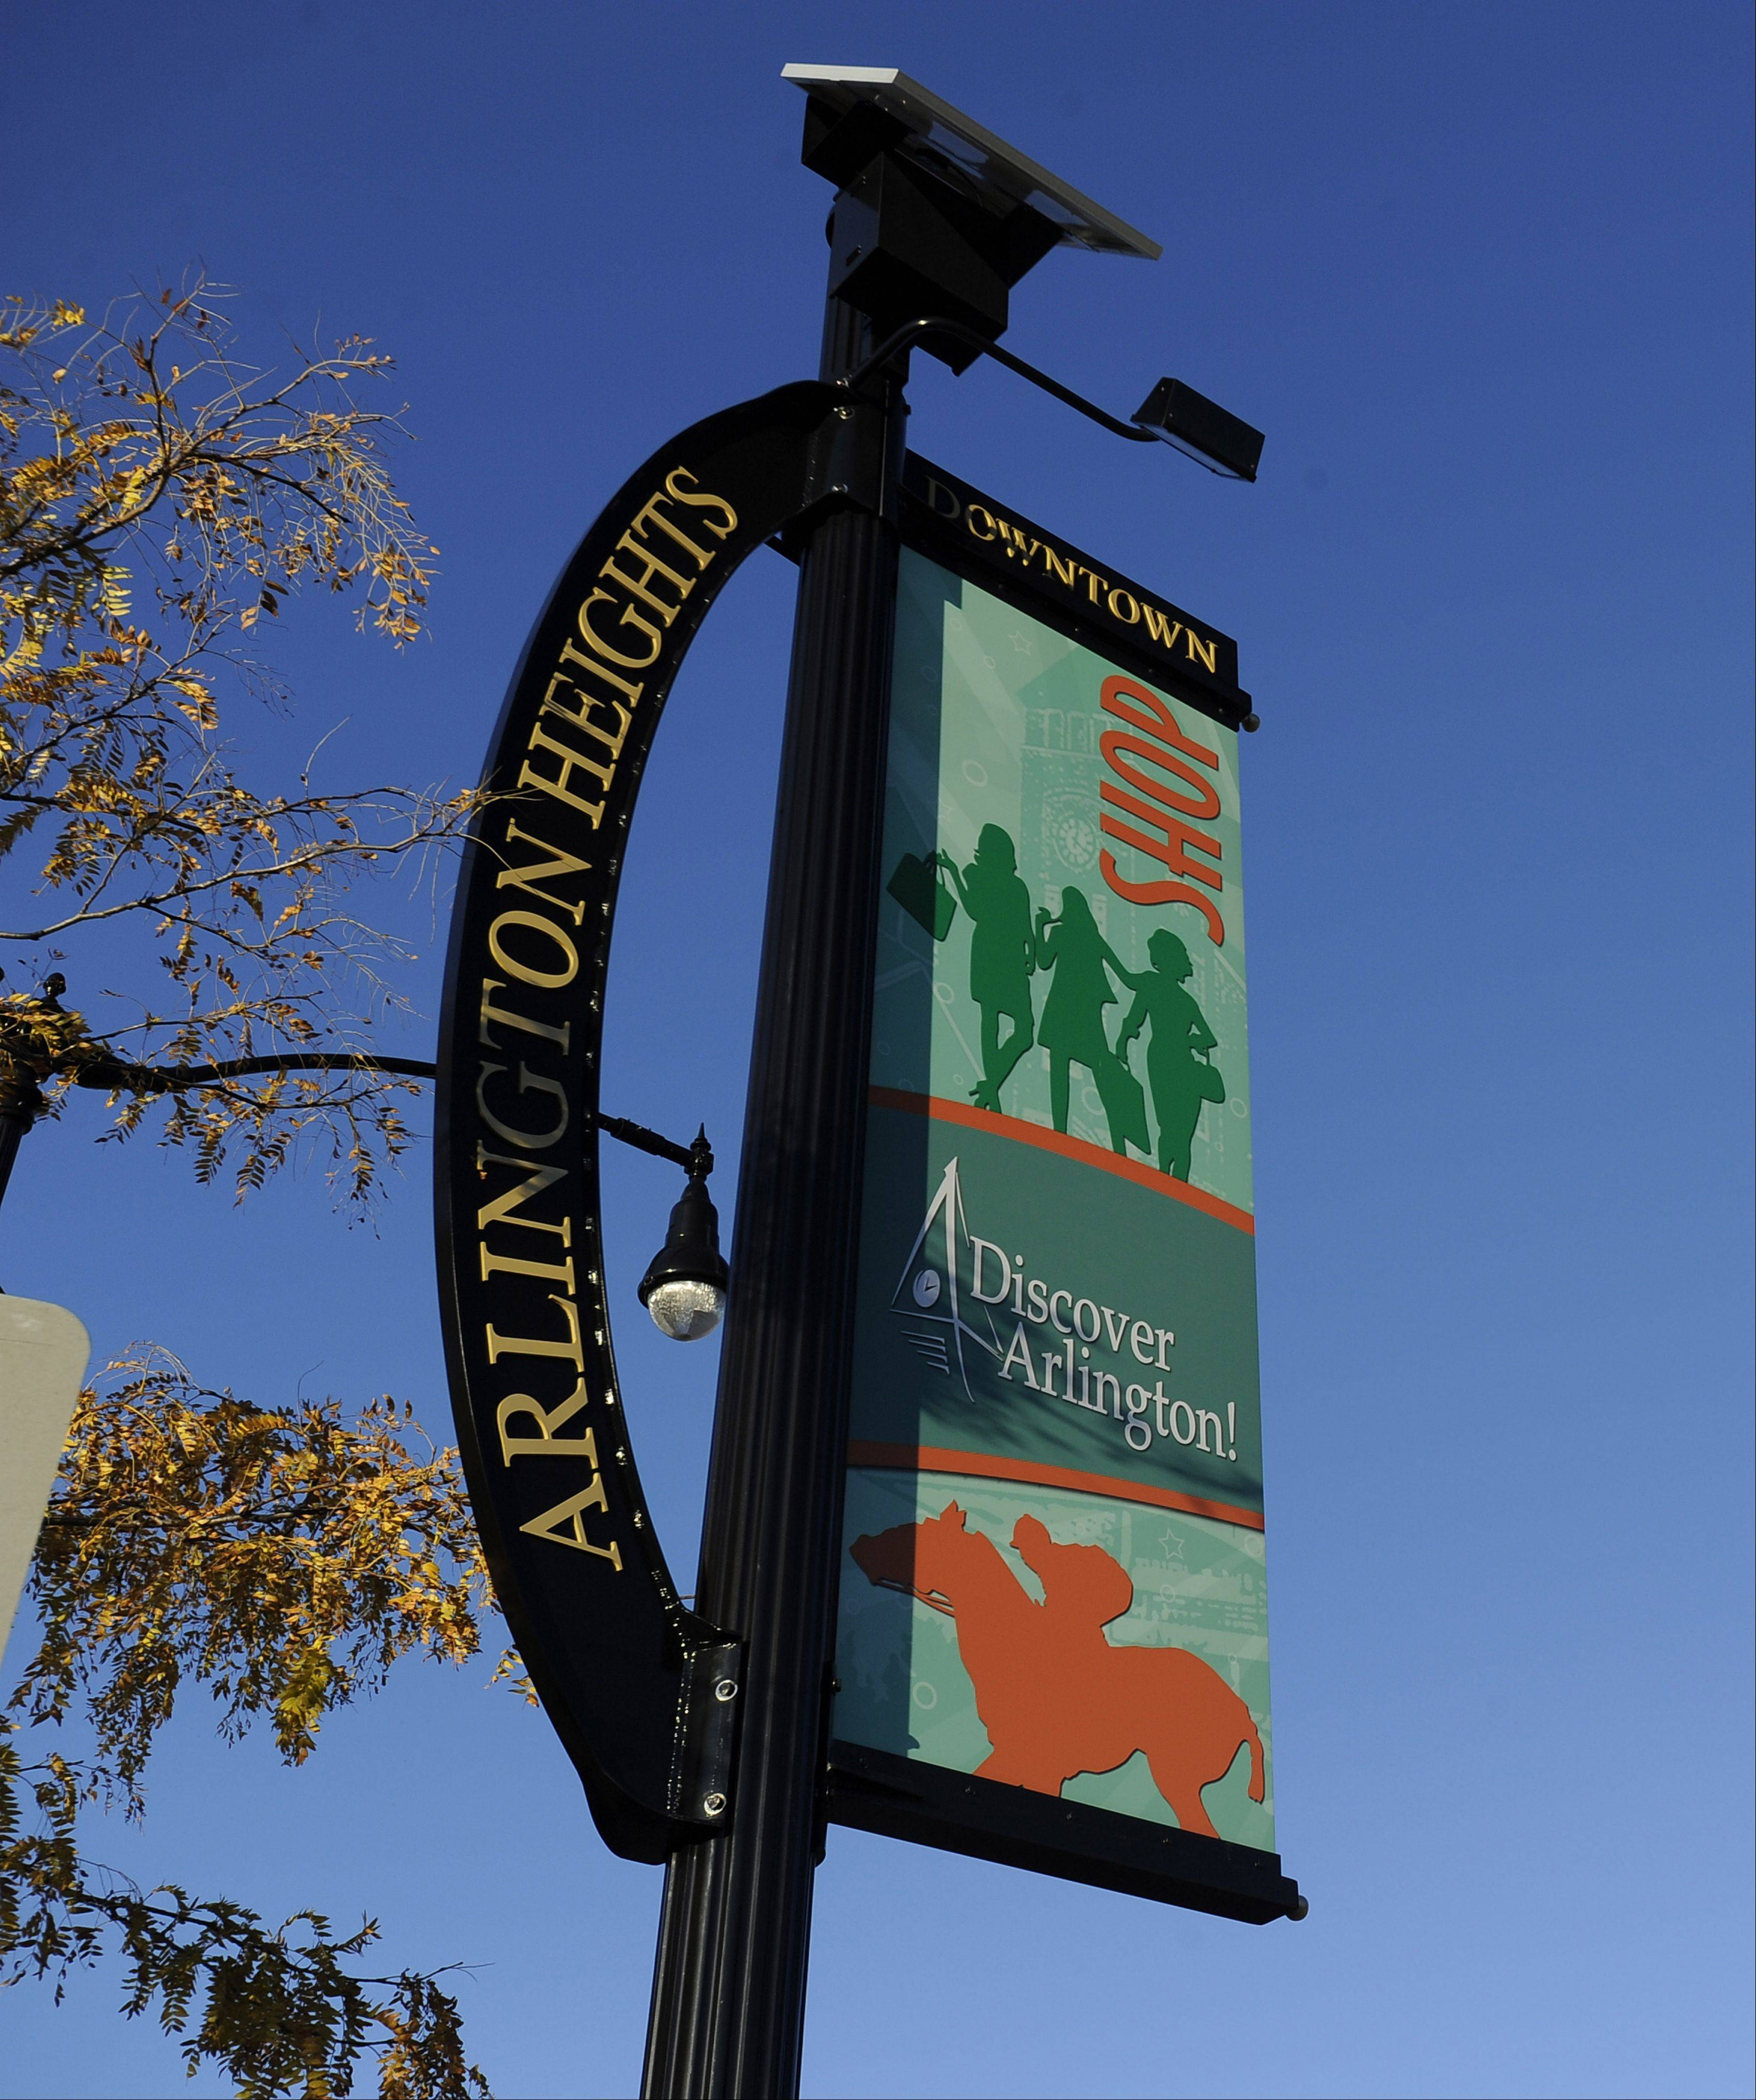 The Discover Arlington campaign on a banner in downtown Arlington Heights.